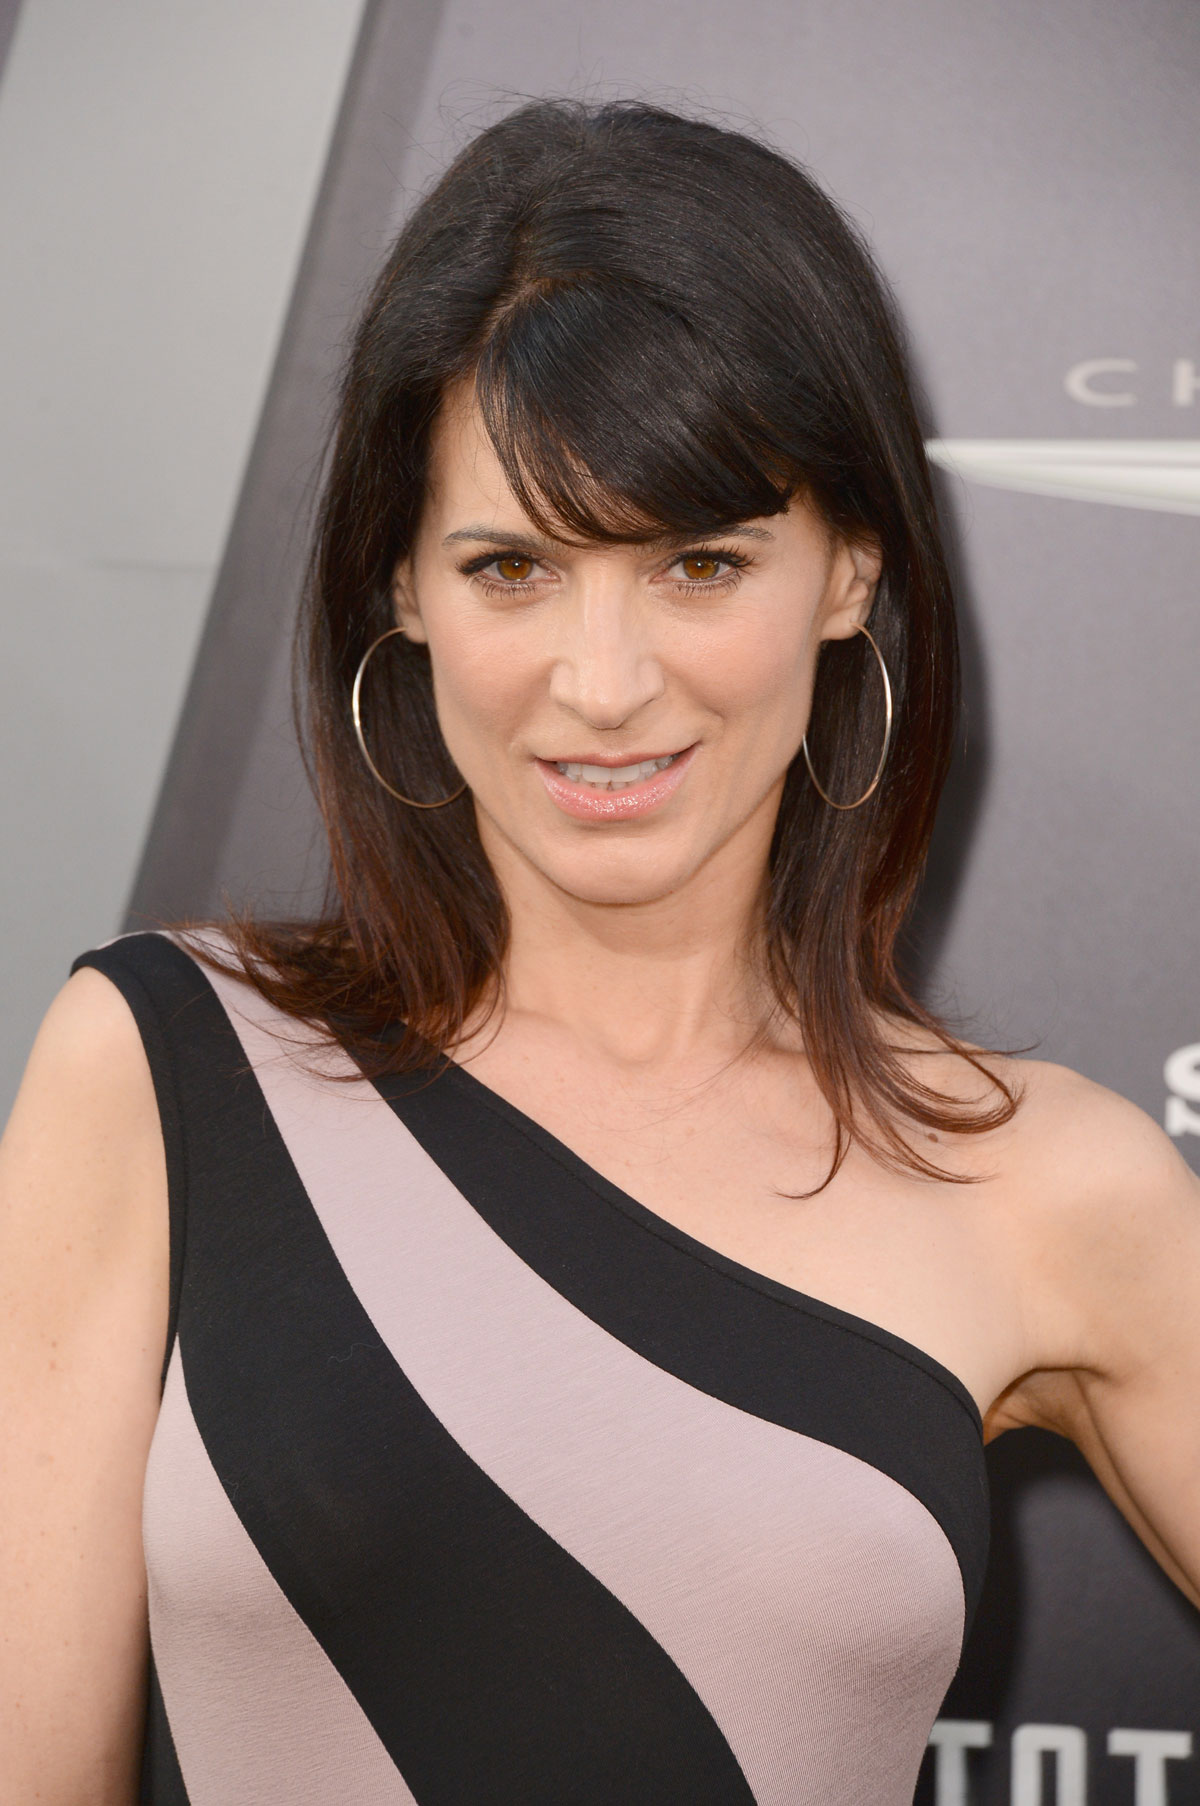 The 46-year old daughter of father (?) and mother(?), 166 cm tall Perrey Reeves in 2017 photo